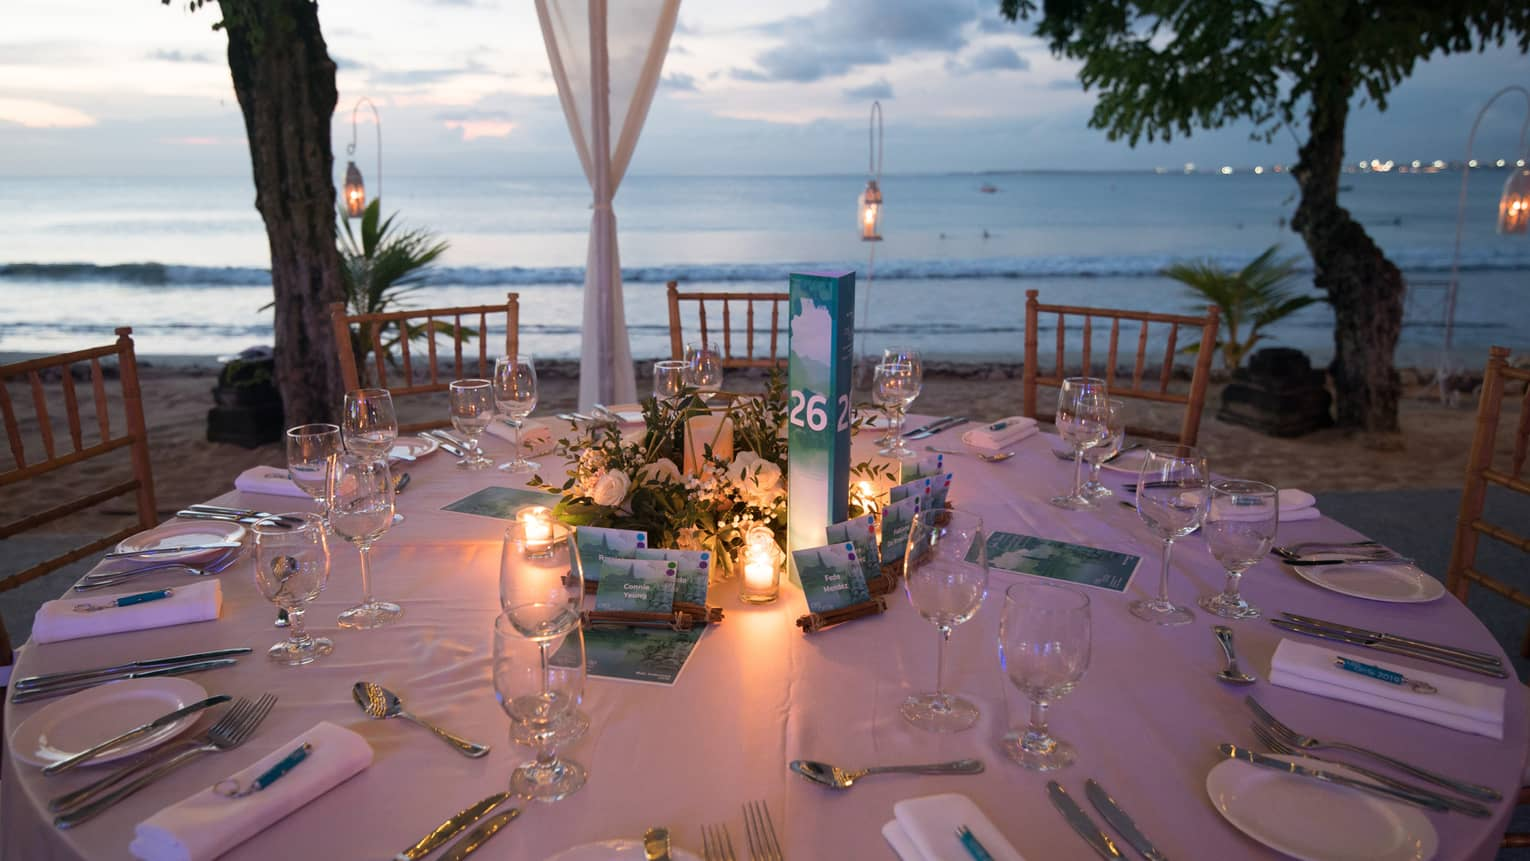 Round banquet dining table with candles overlooking ocean at dusk